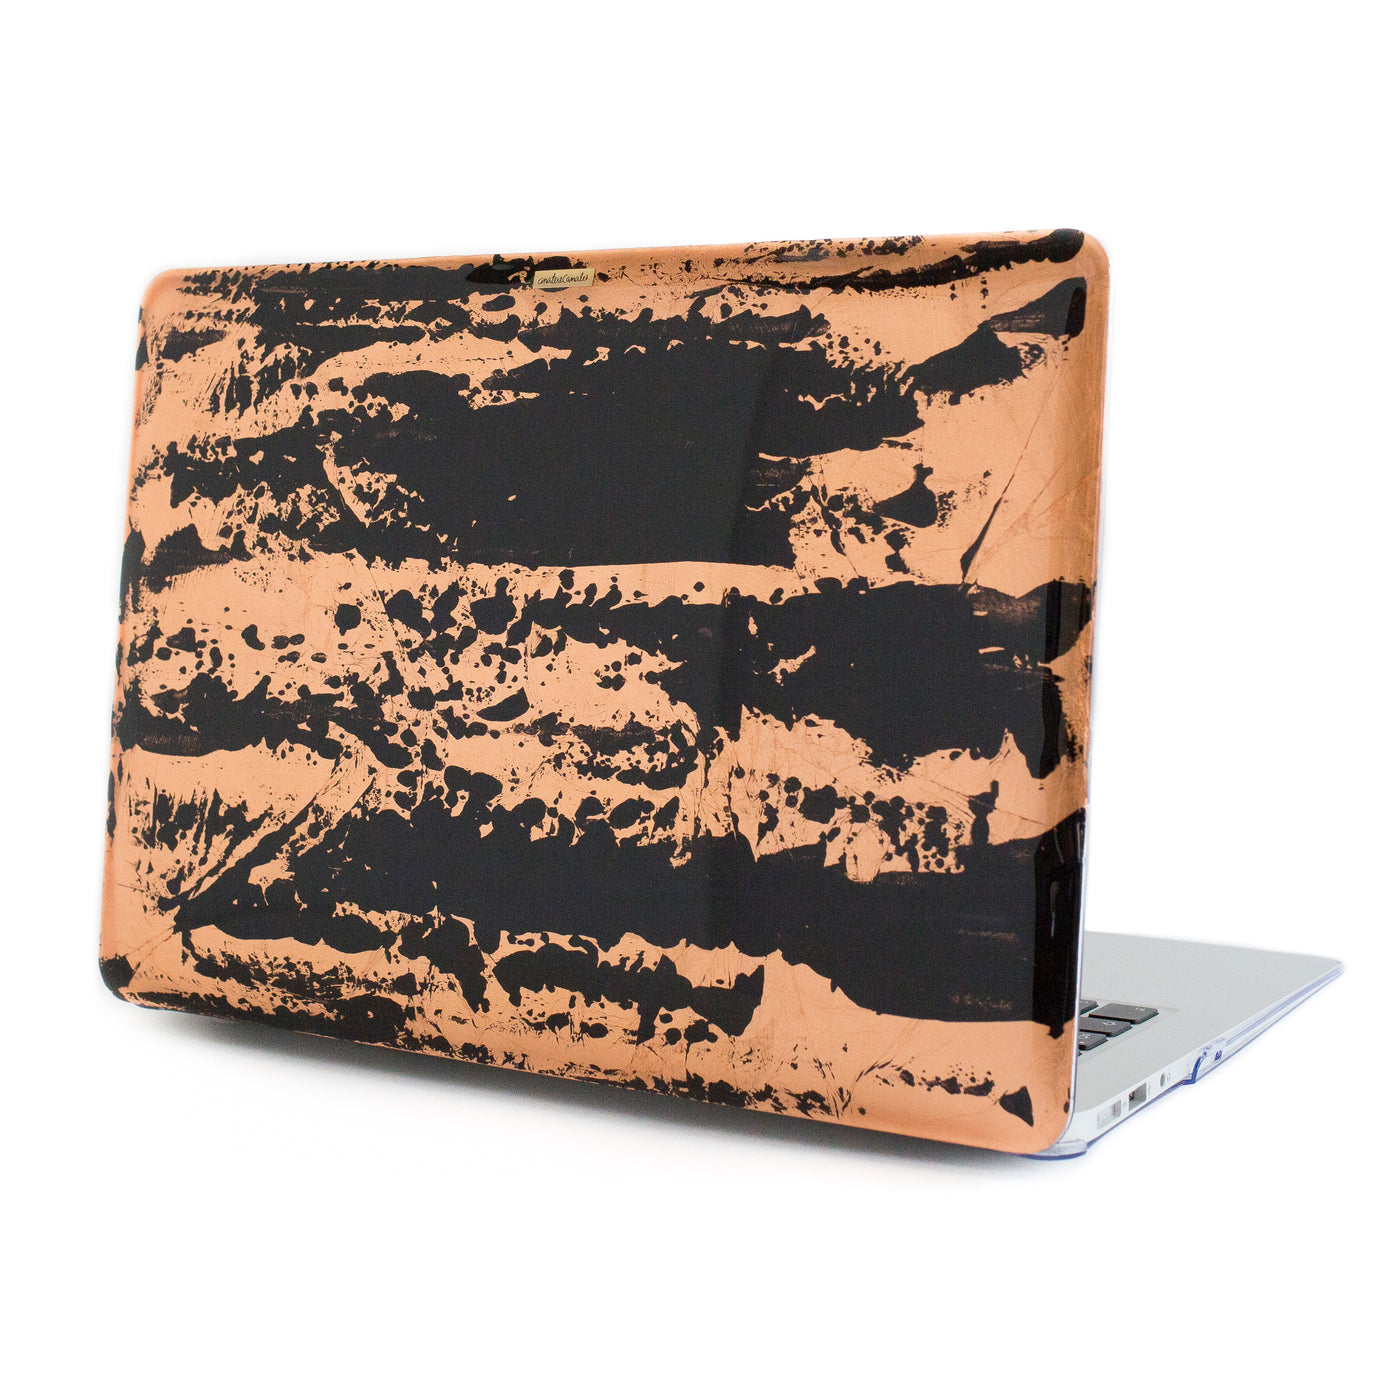 Black Rose Gold Macbook Case - Ana Tere Canales